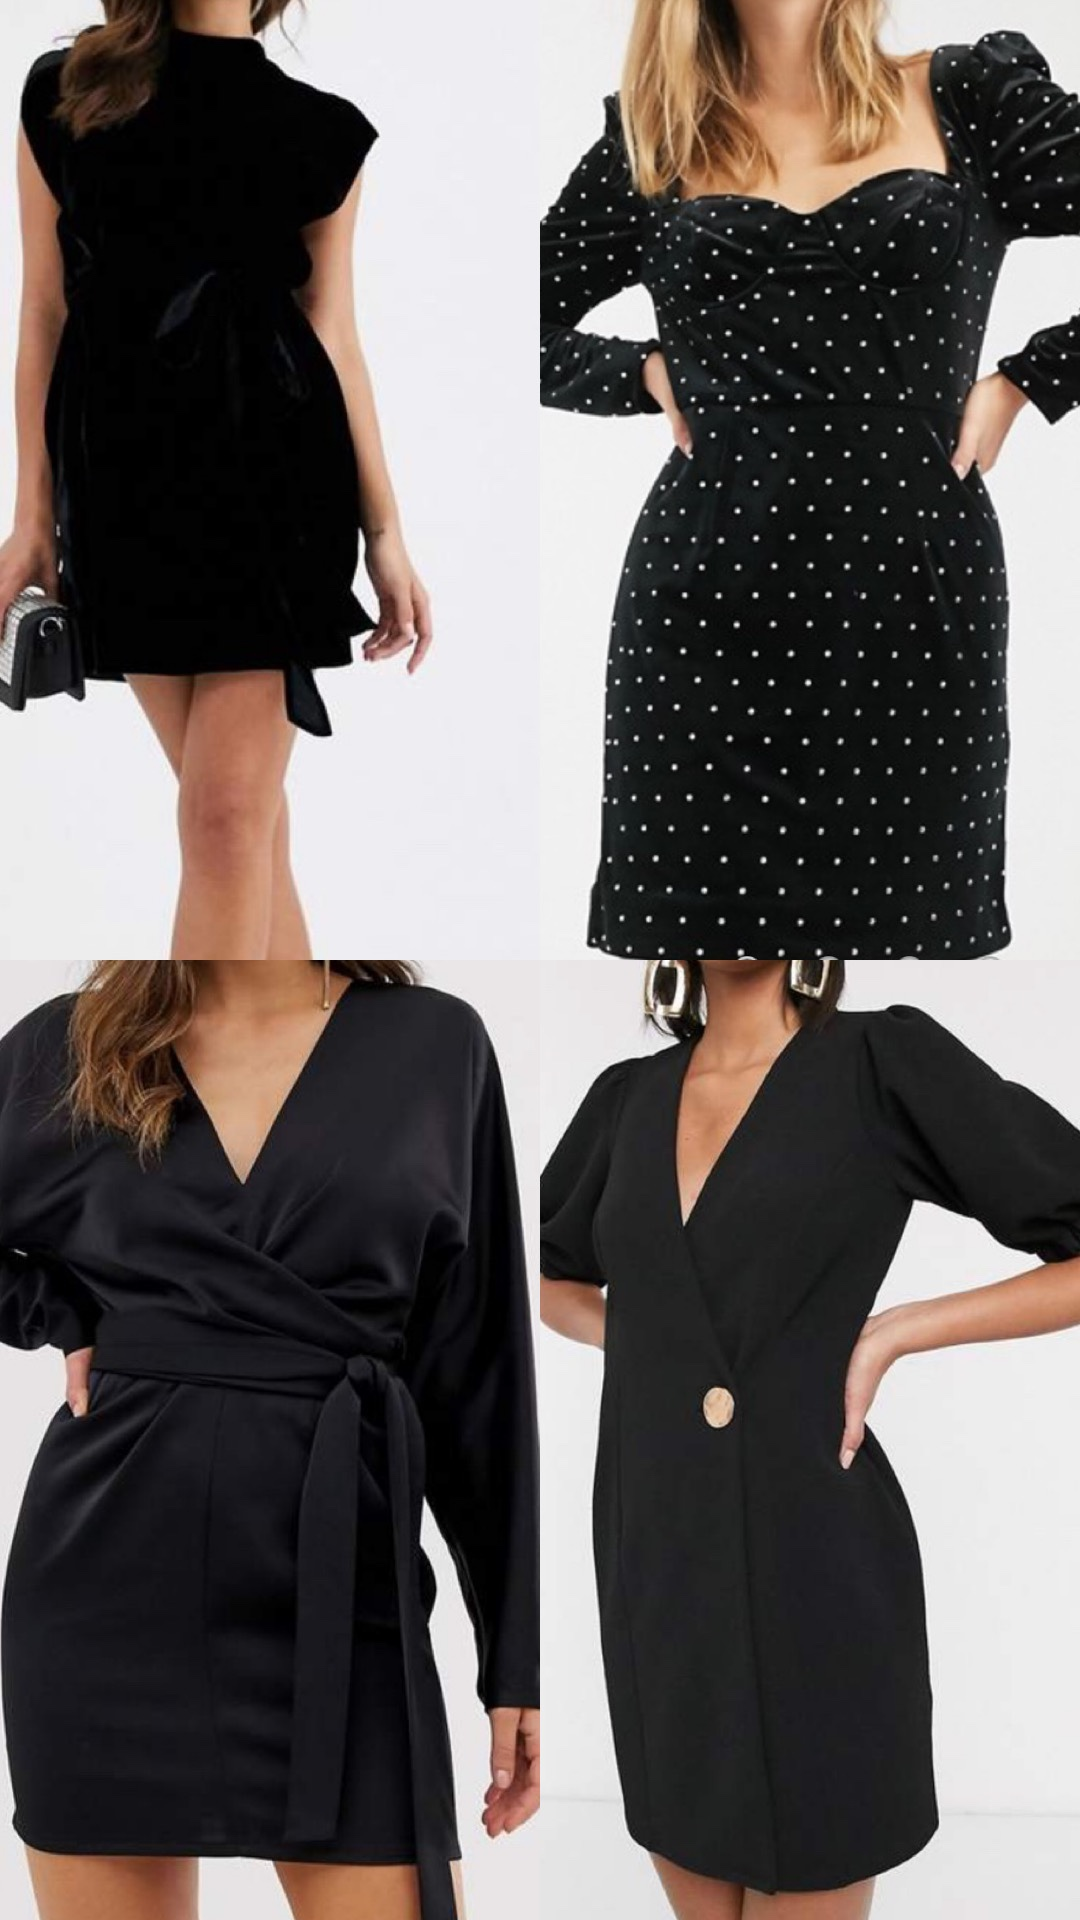 The perfect little black dresses for New Year's Eve